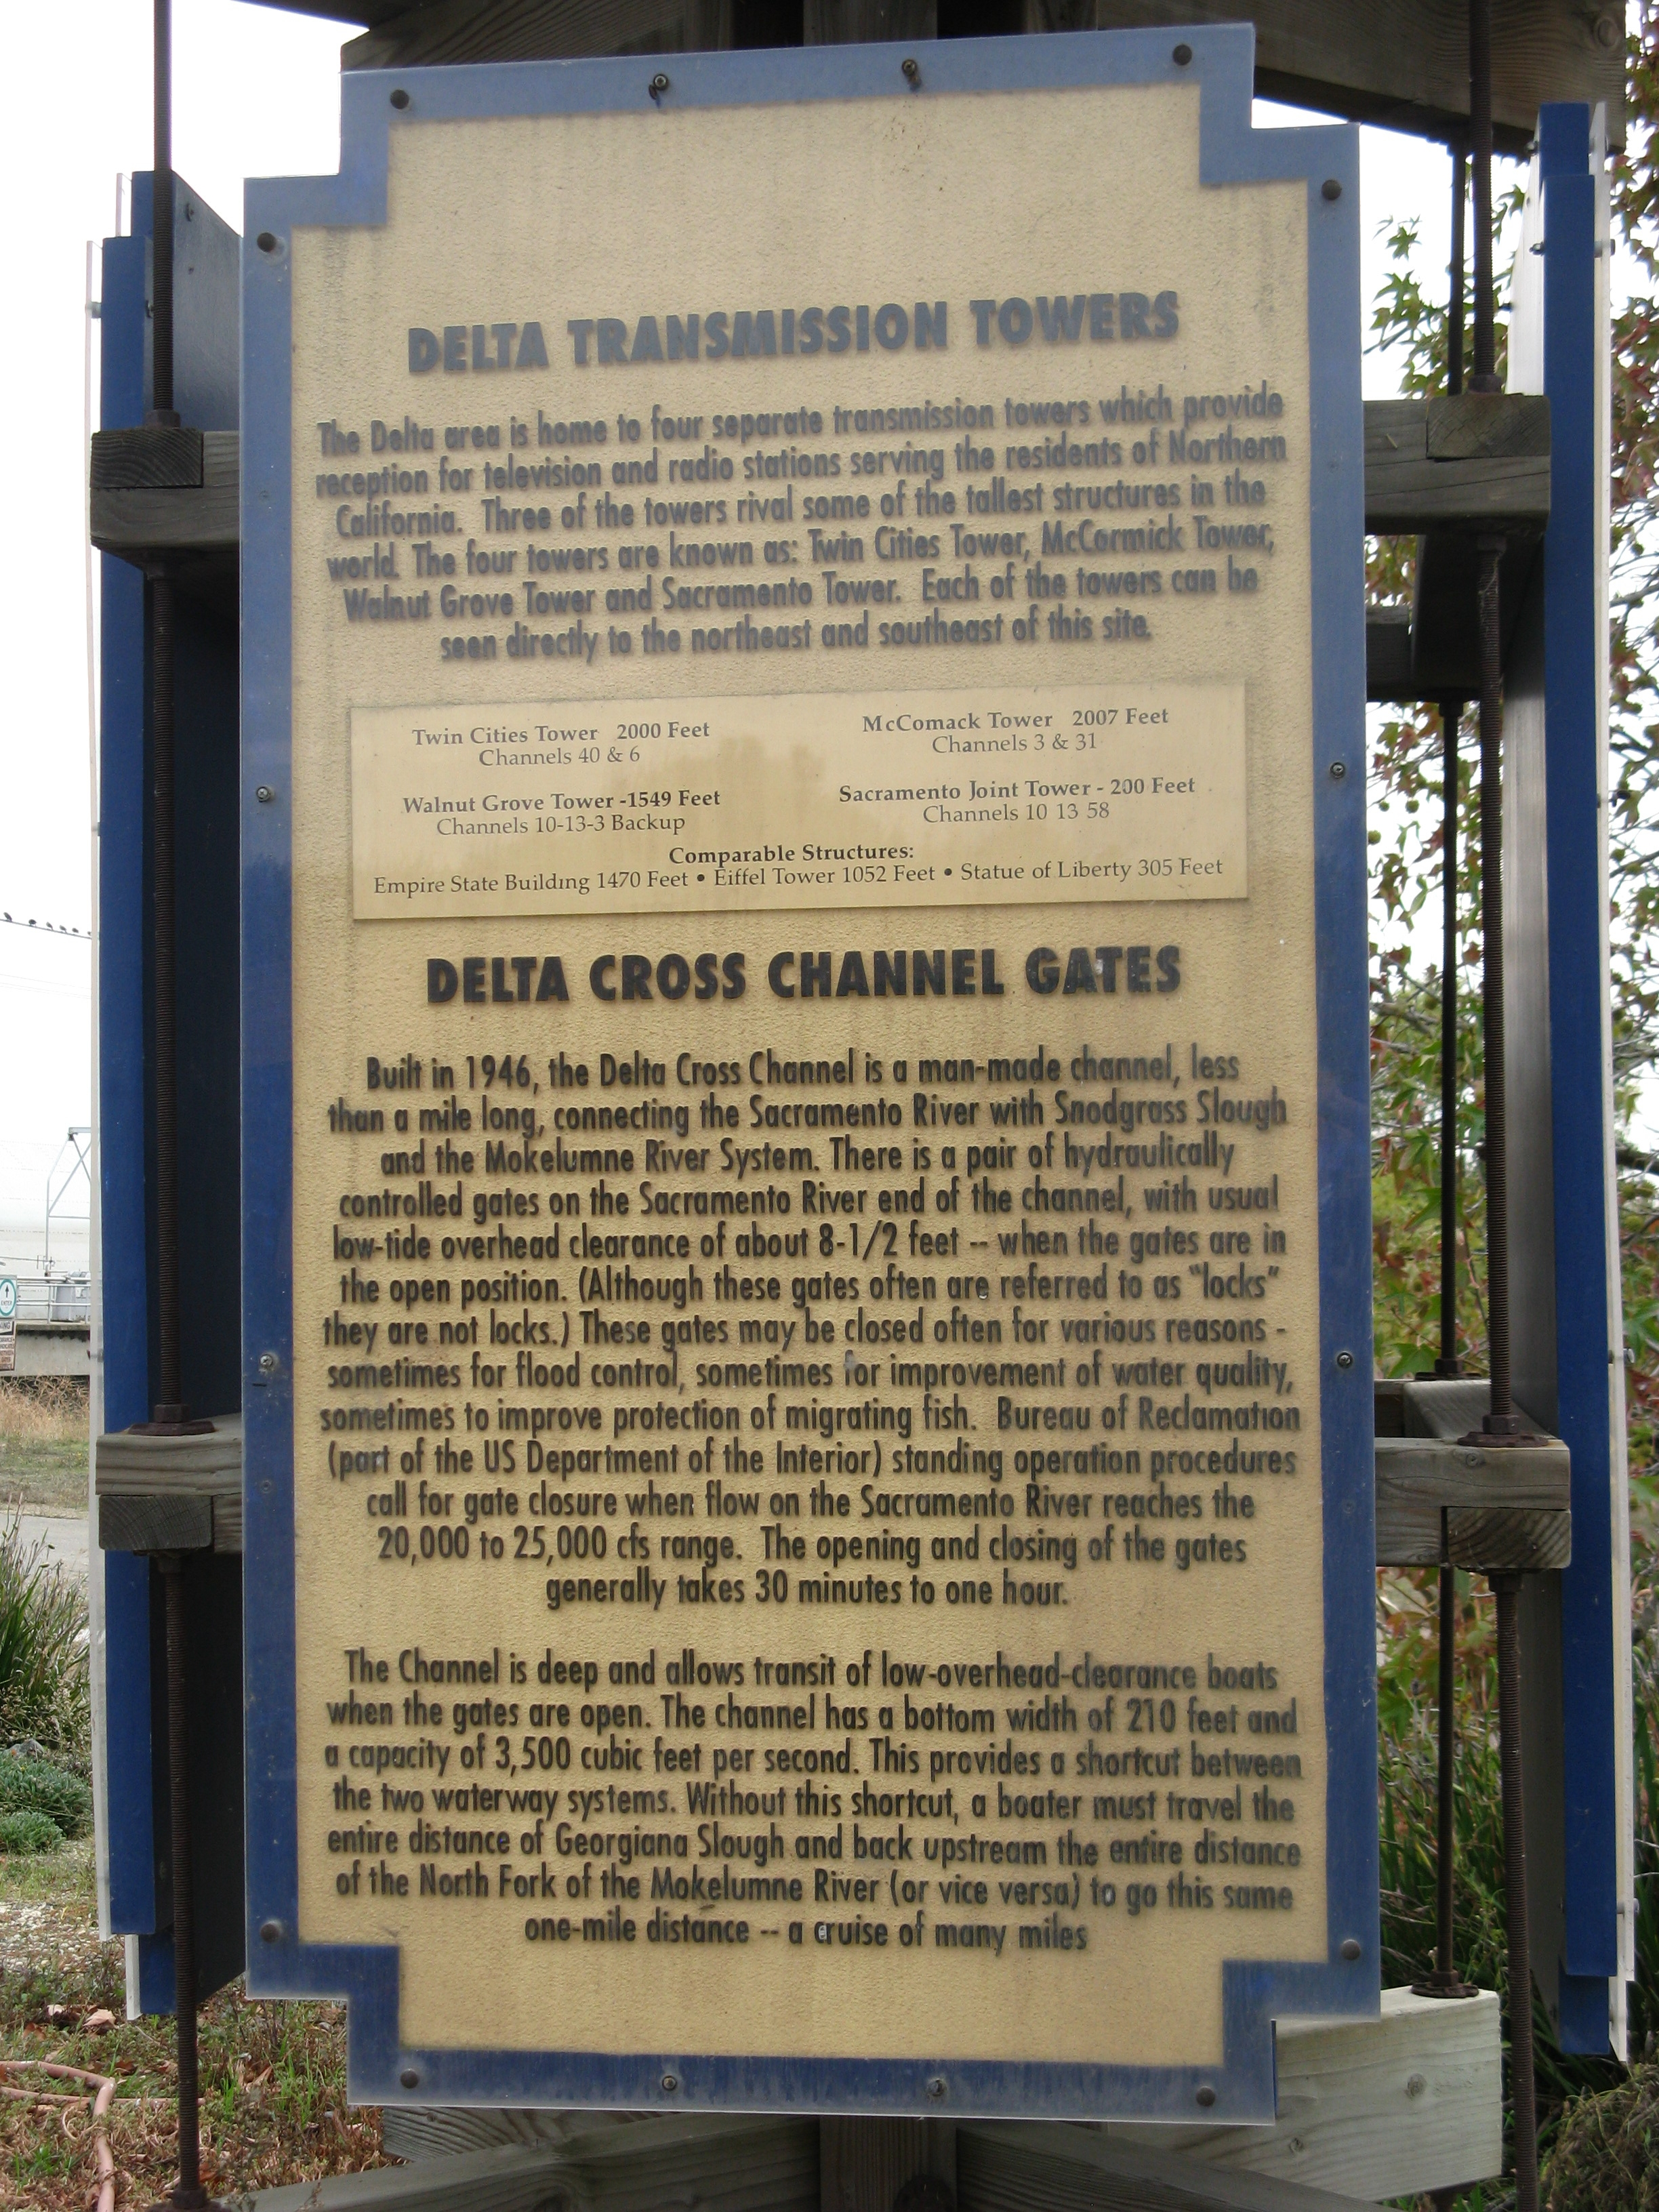 Delta Transmission Towers/Delta Cross Channel Gates Marker